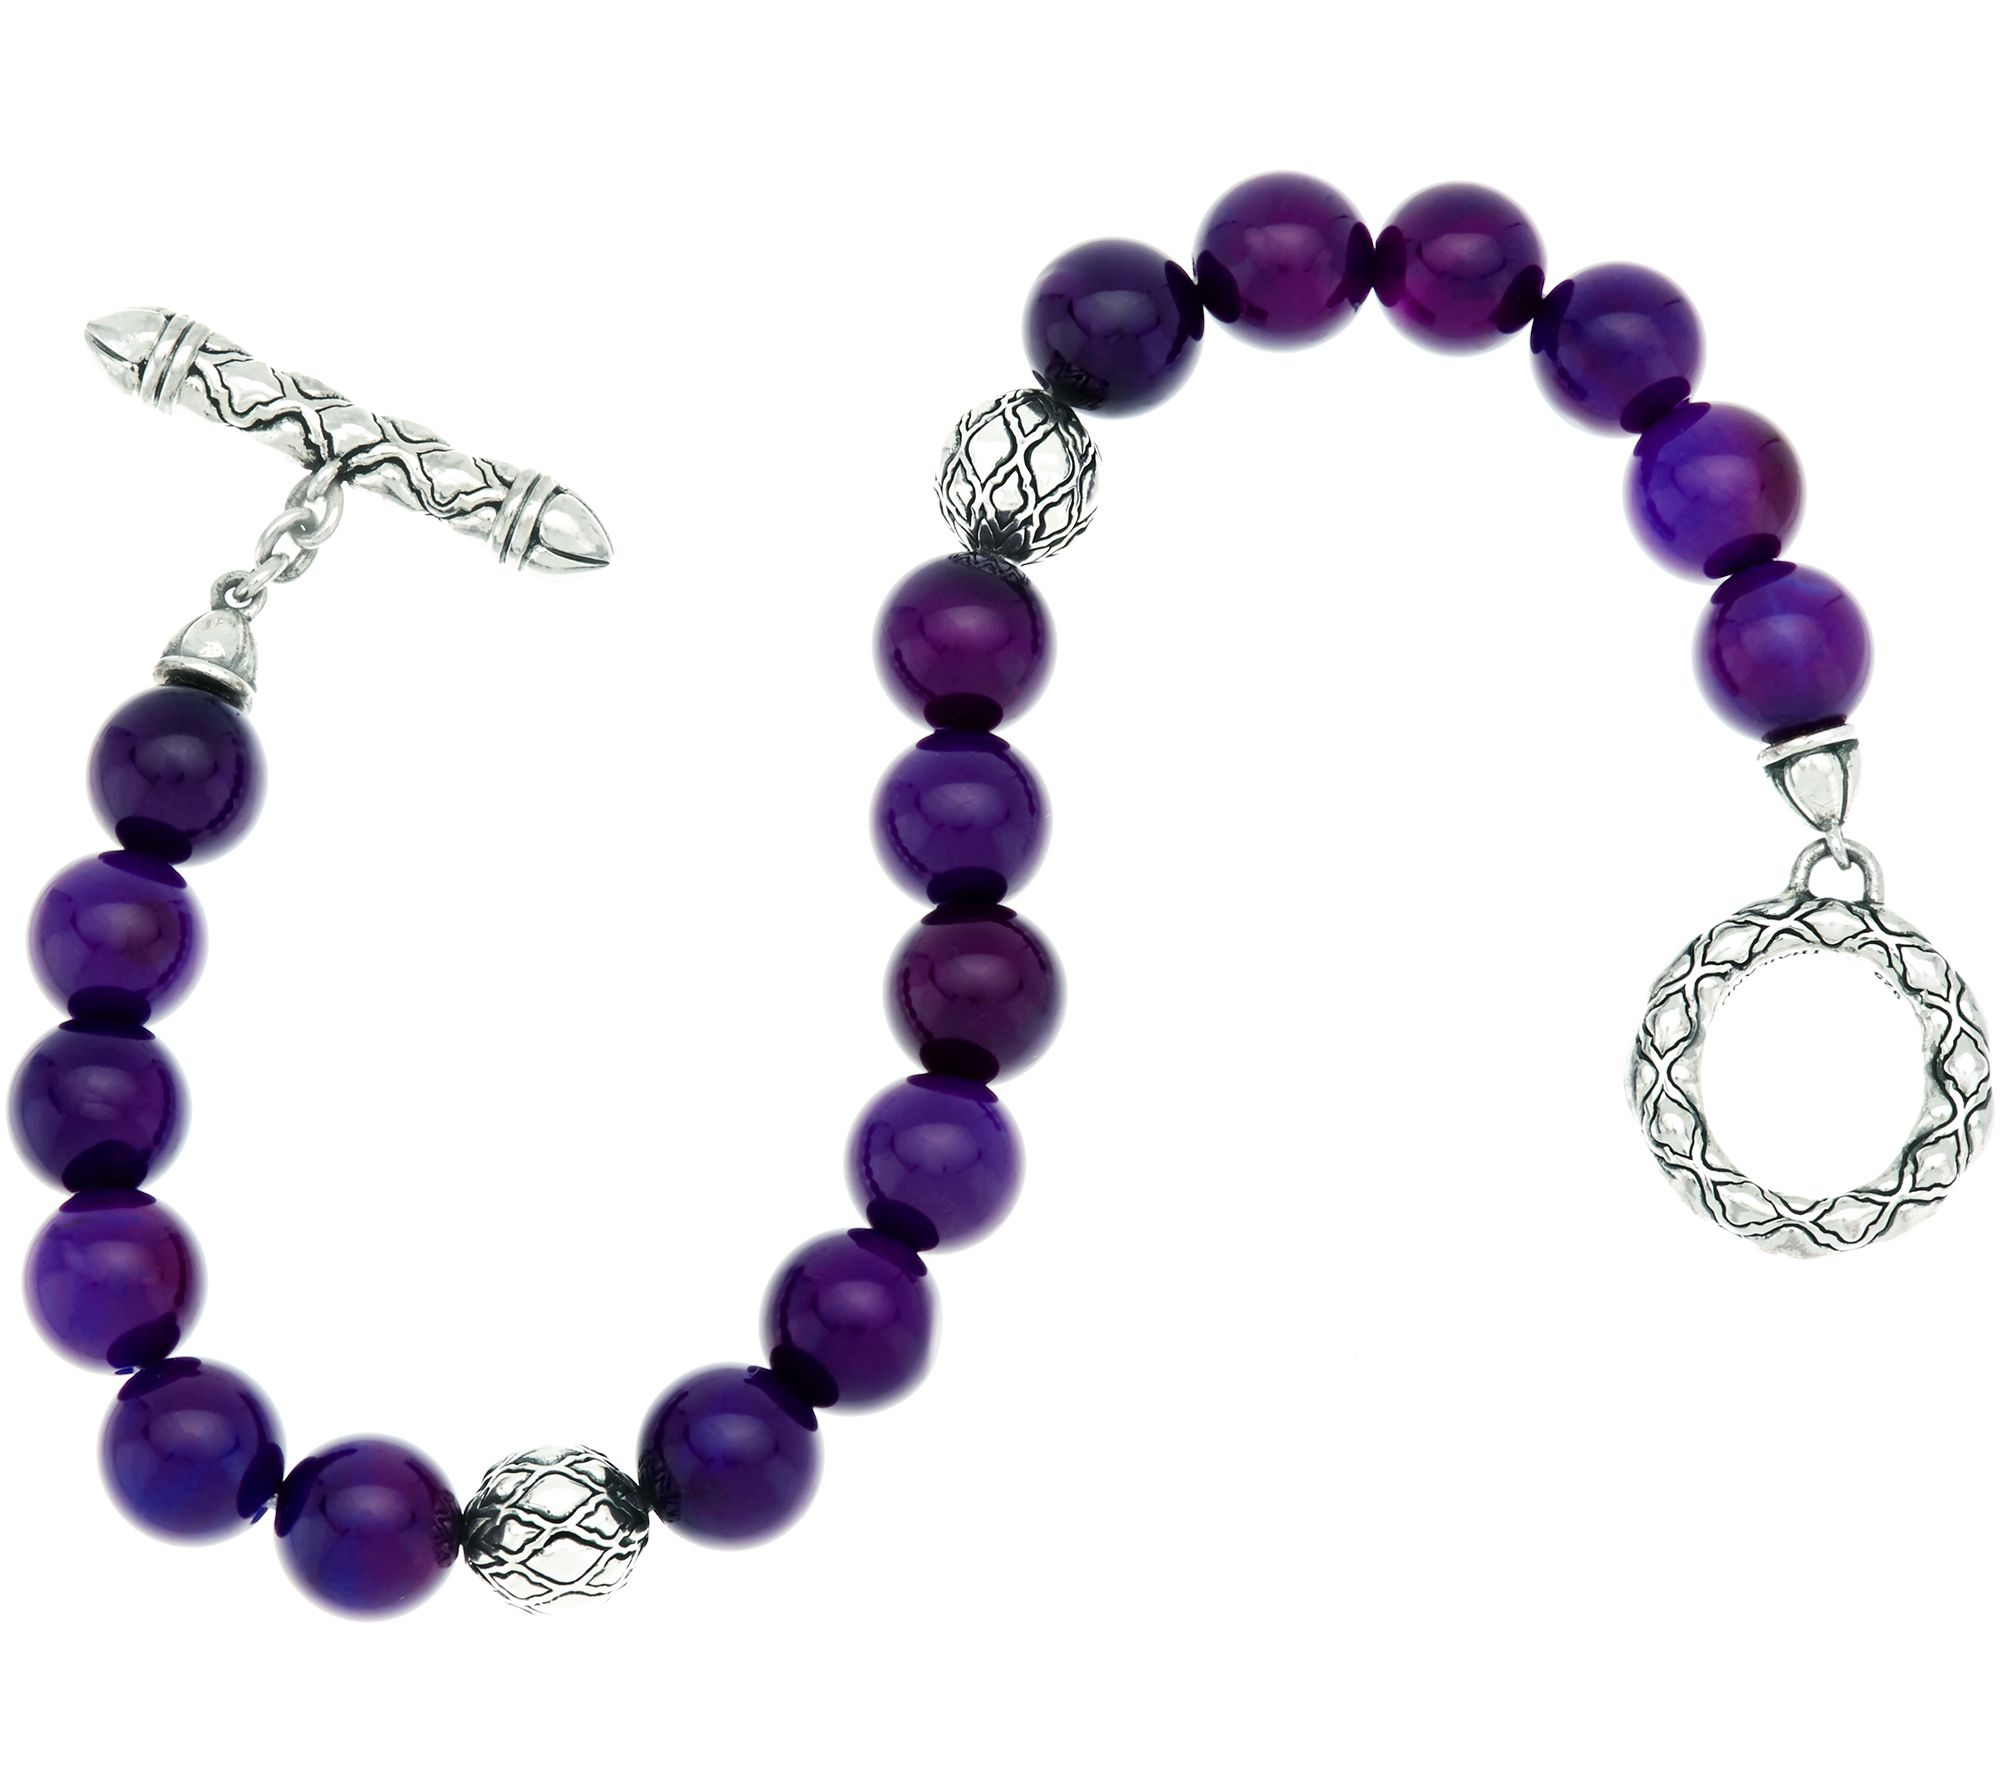 JAI Sterling & Gemstone Bead Toggle Closure Bracelet